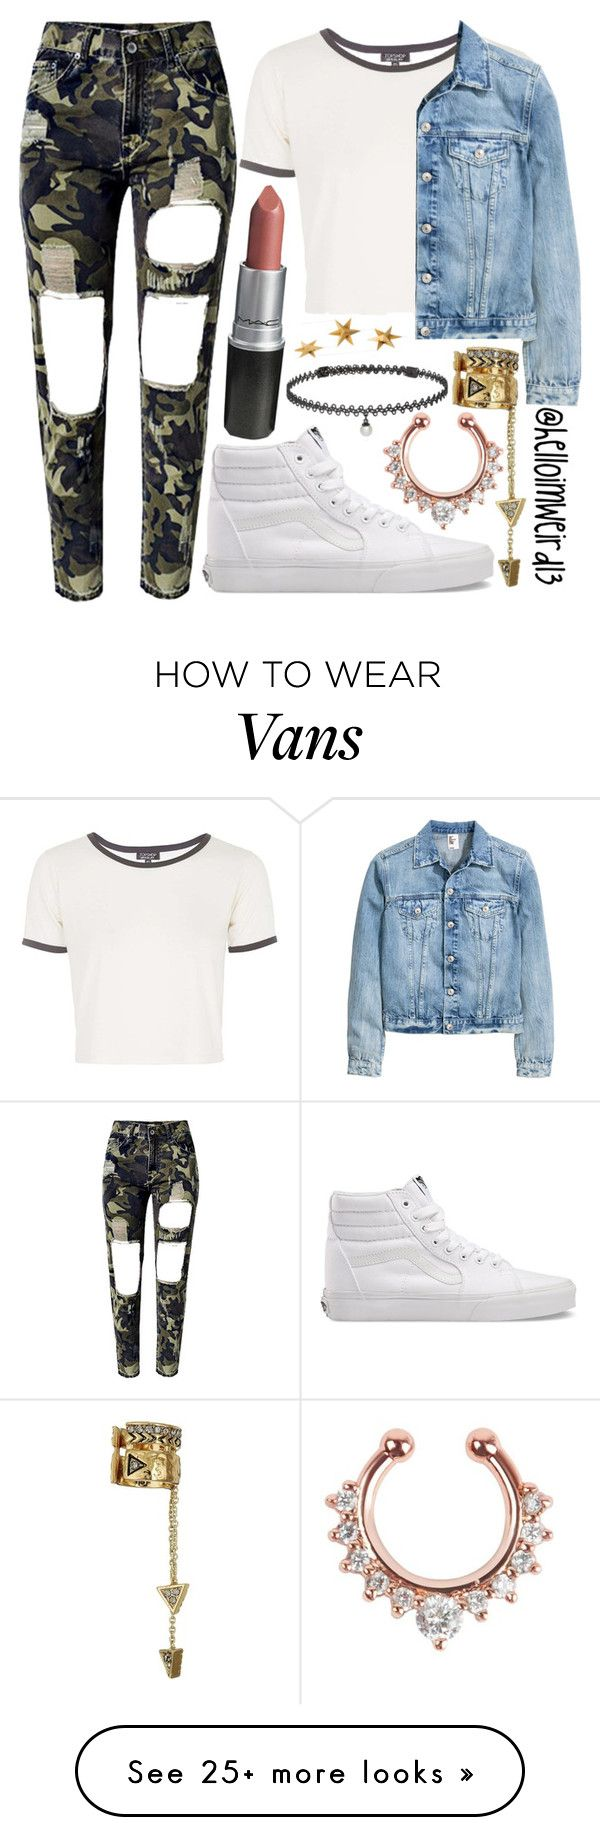 """""""and all the kids cried out"""" by helloimweird13 on Polyvore featuring WithChic, Topshop, Vans, House of Harlow 1960, BERRICLE and Livingly"""